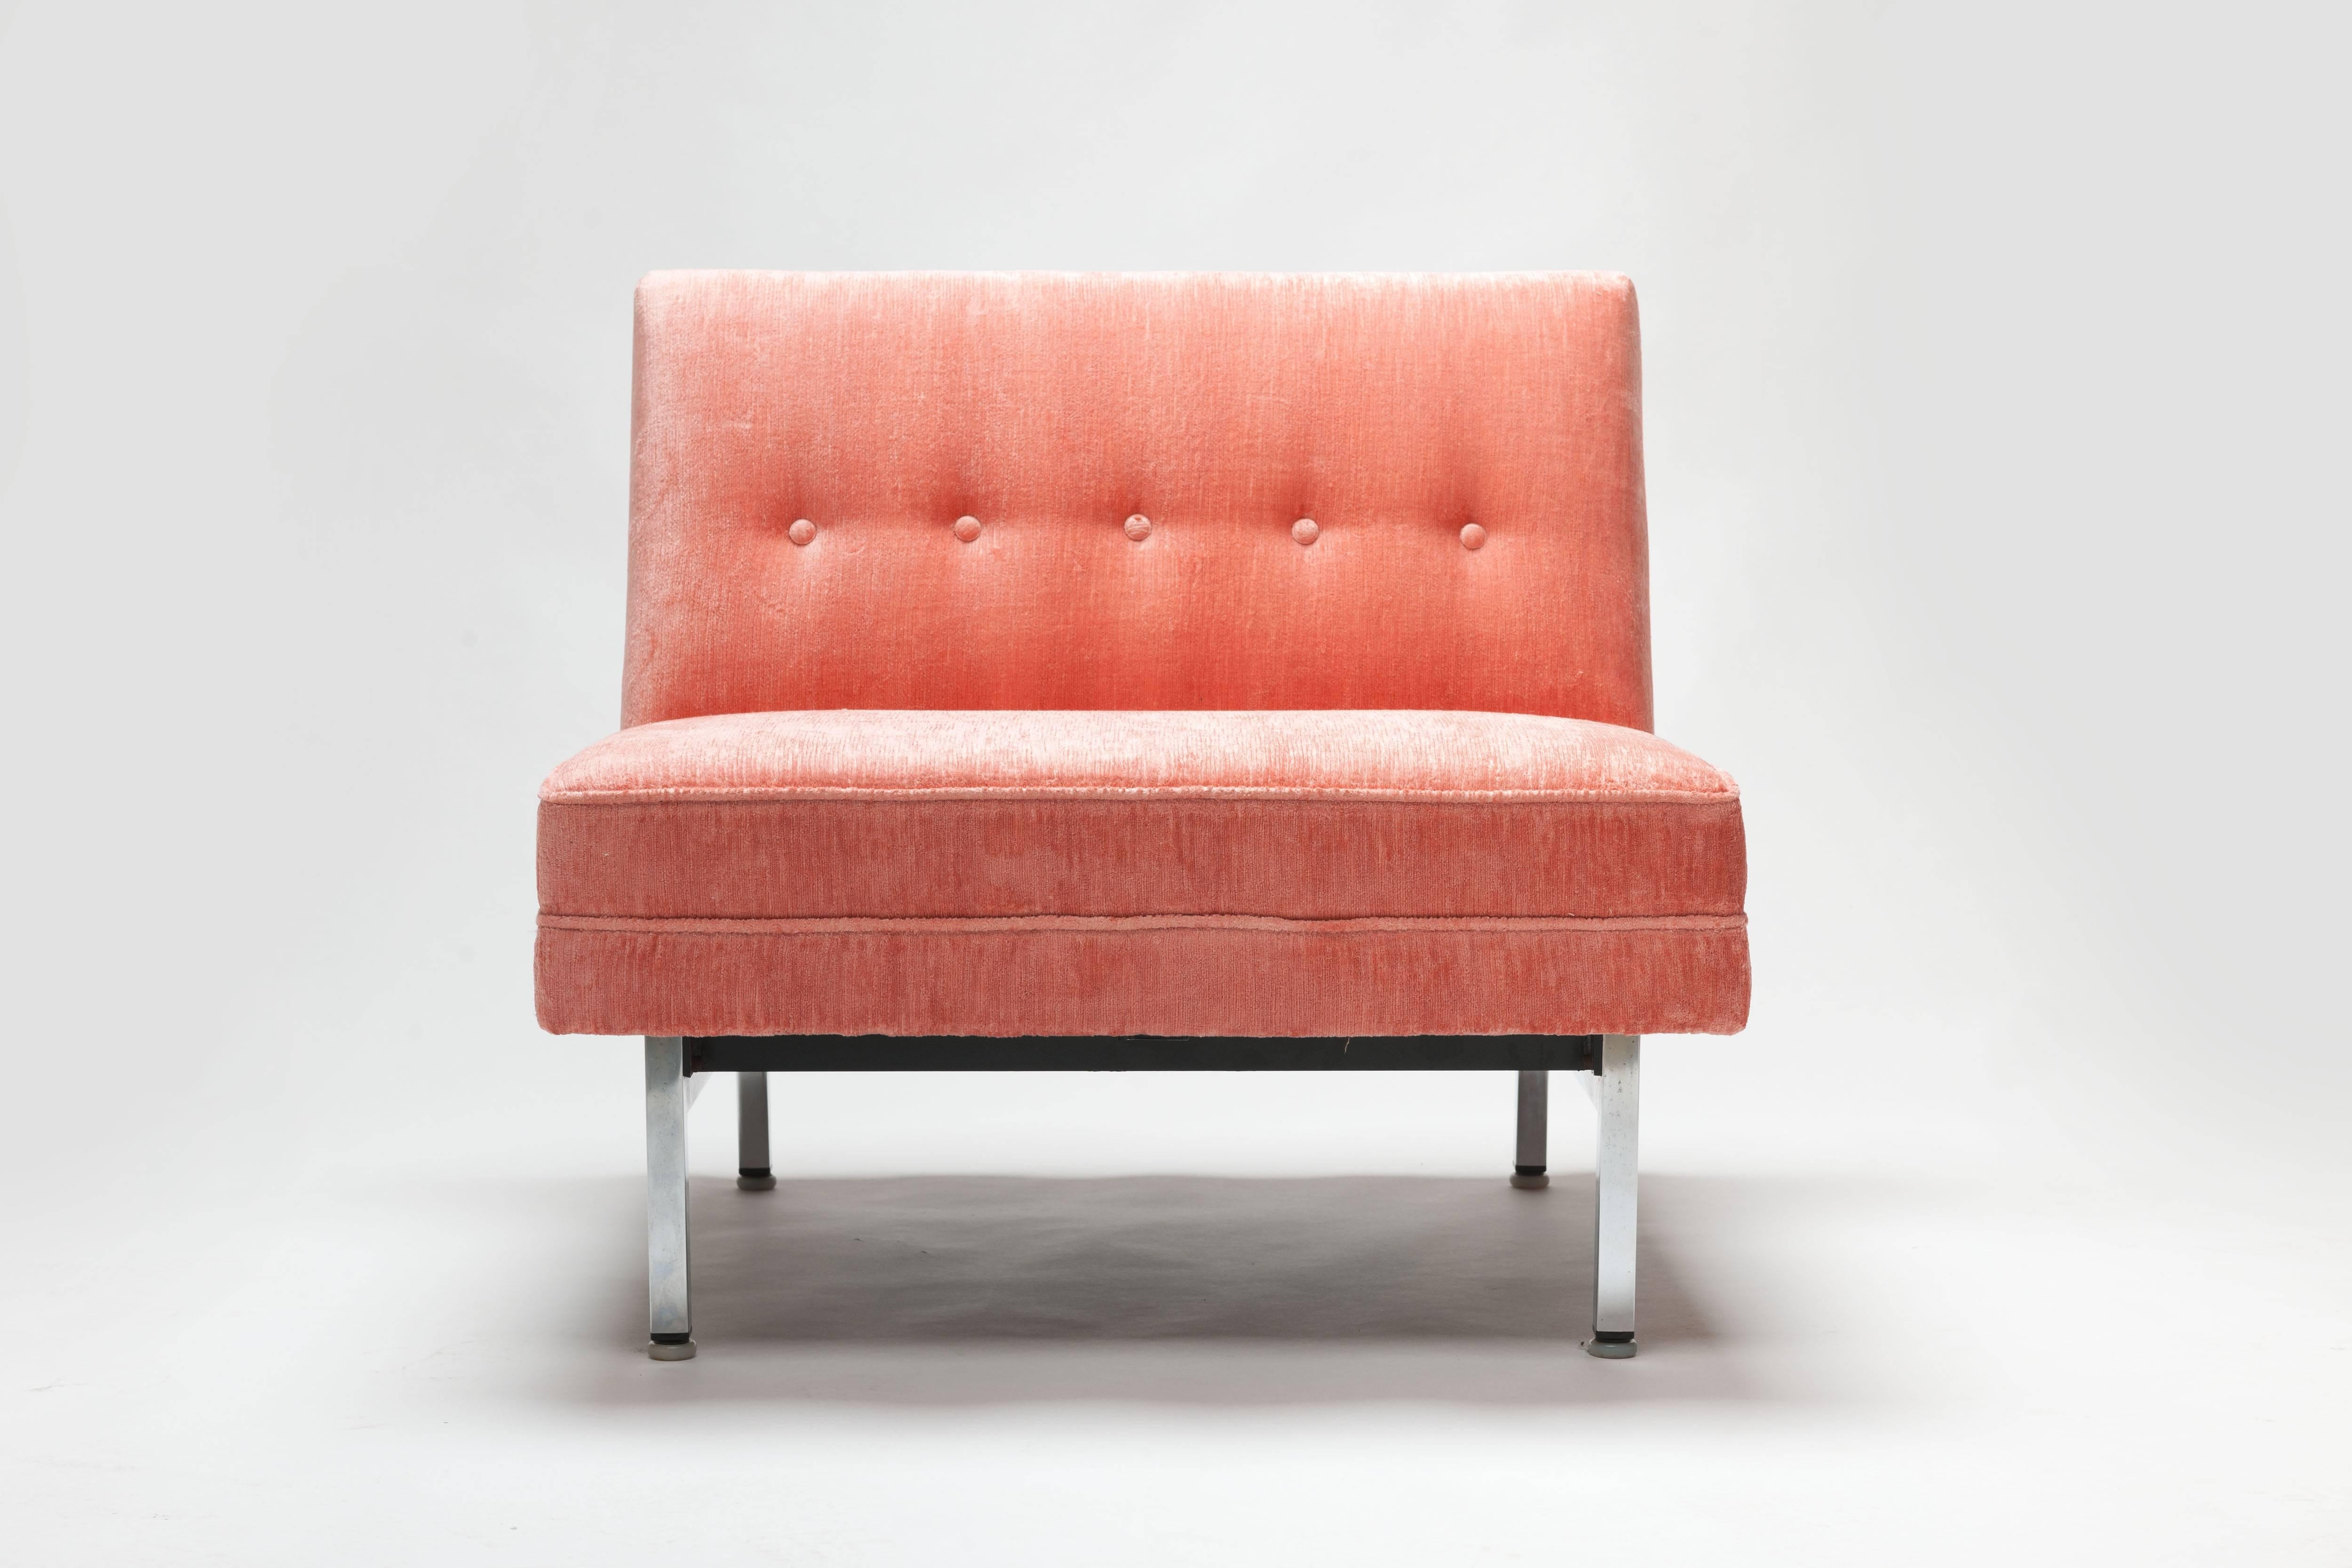 Pair Of Pink George Nelson Modular Seating Series Chairs By Herman Miller 3